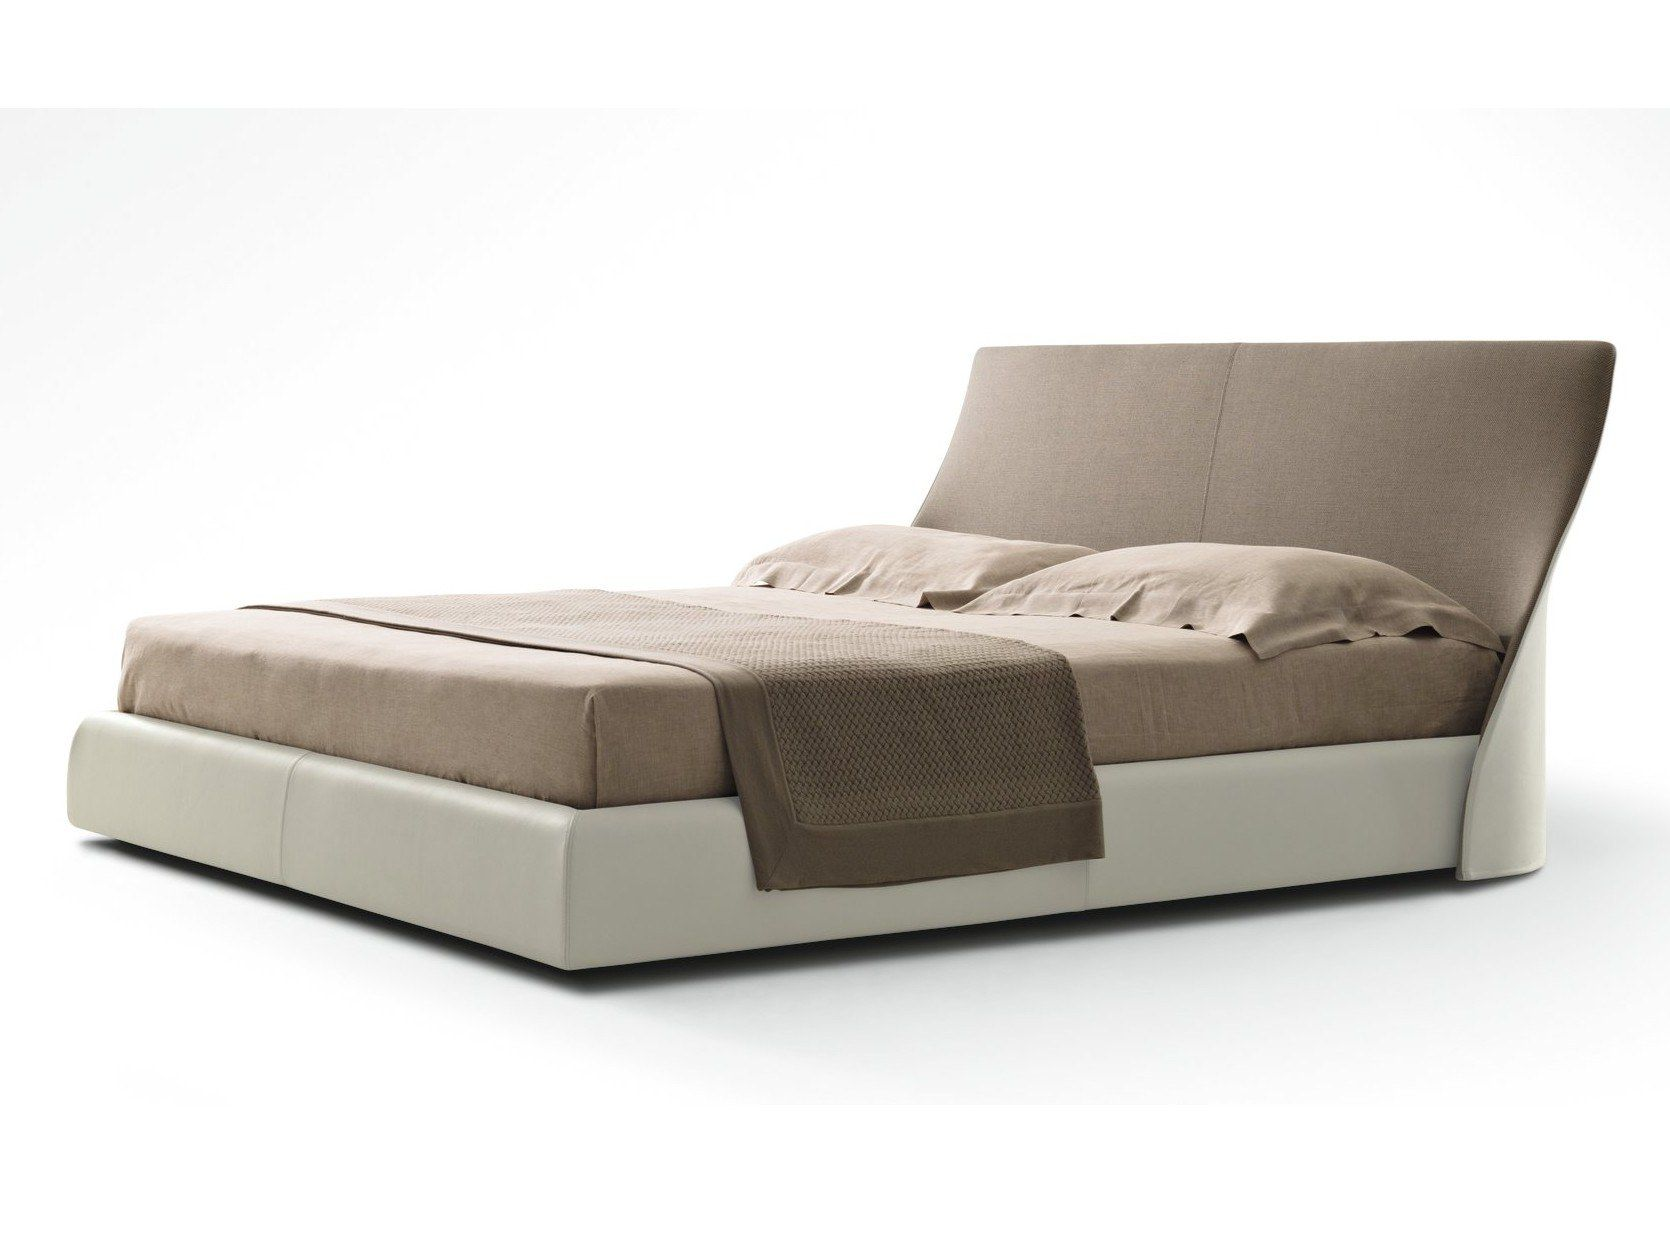 Double Bed With Removable Cover Altea By Giorgetti